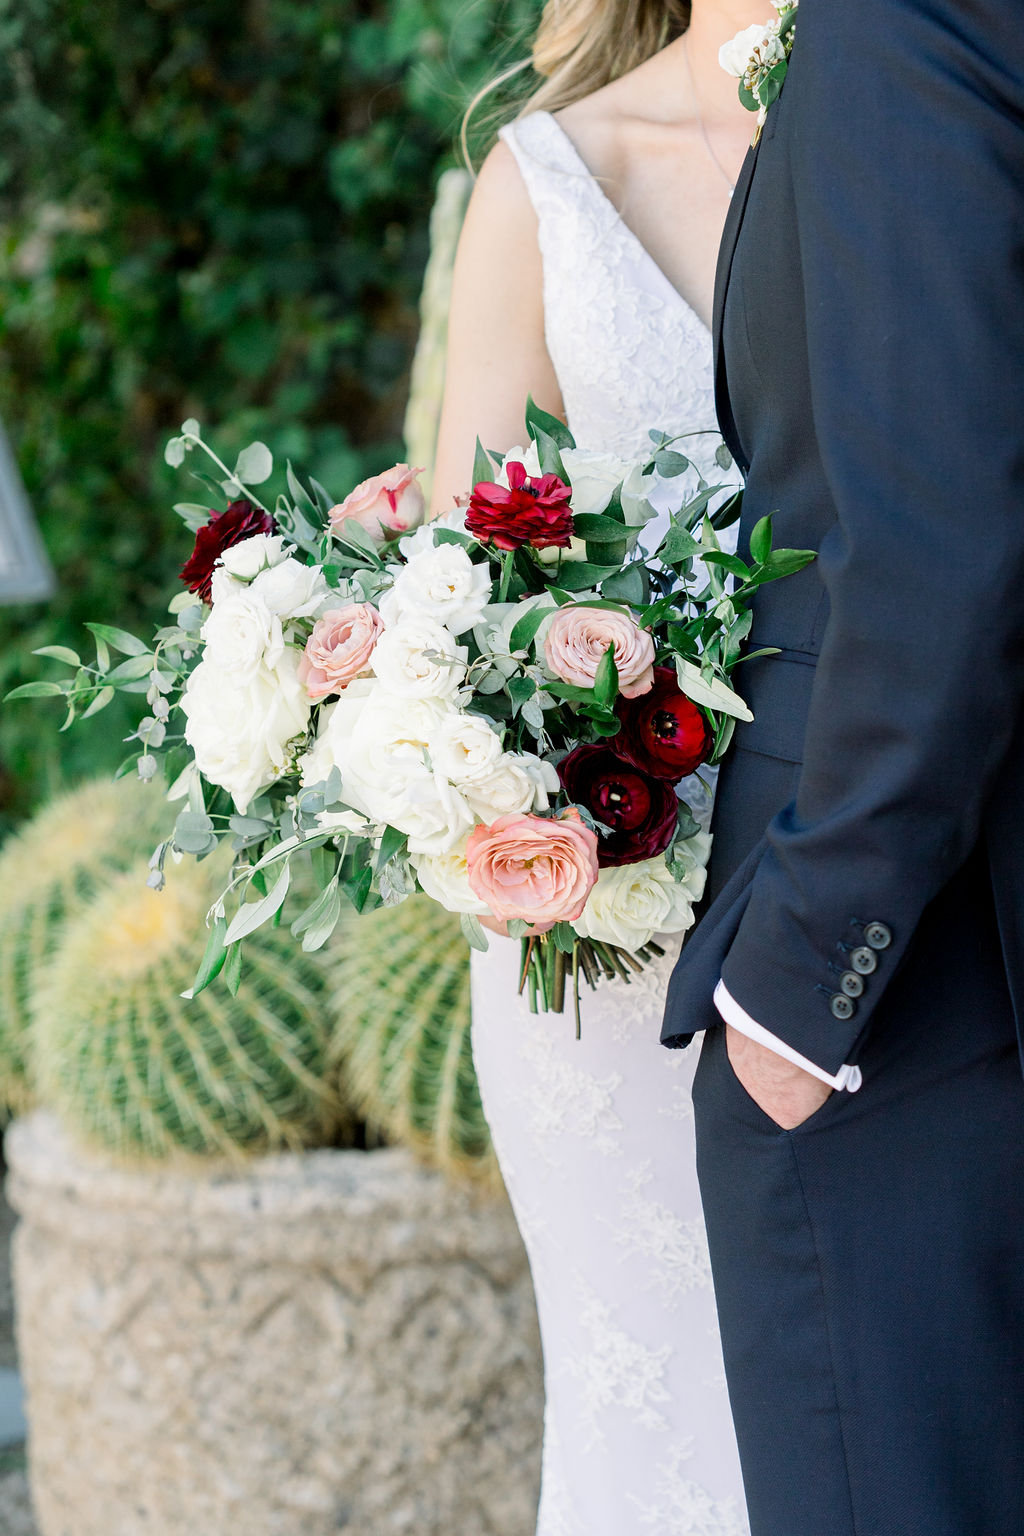 Superstition Mountain Destination Wedding - Arizona Wedding Florist - Phoenix, Scottsdale, Sedona - Bridal Bouquet Inspiration with Roses, Ranunculus, and Eucalyptus